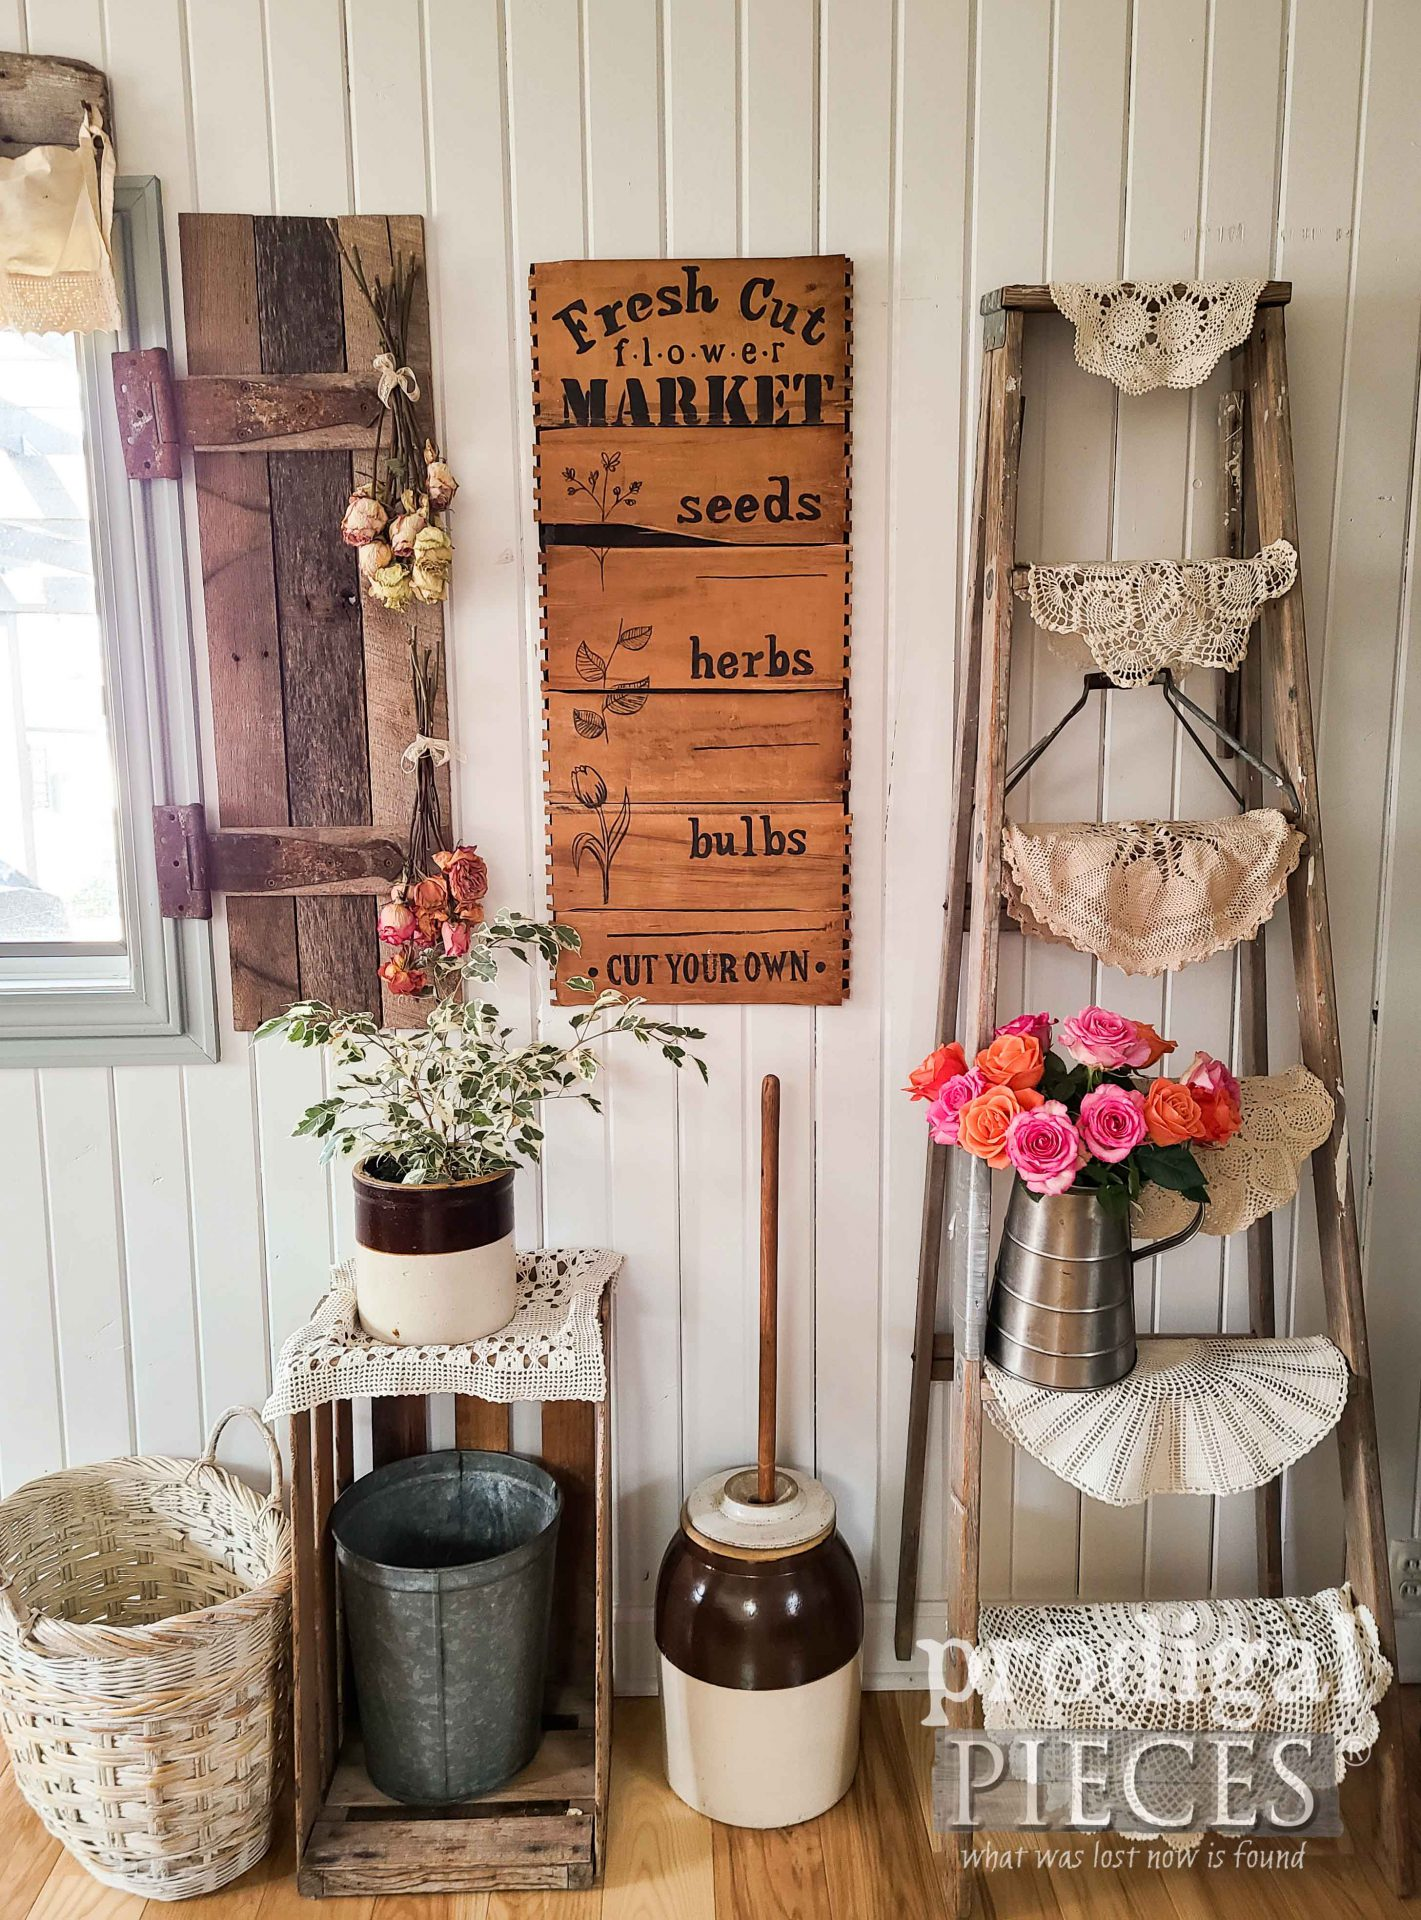 Farmhouse Spring Decor from Upcycled Broken Drawers by Larissa of Prodigal Pieces | prodigalpieces.com #prodigalpieces #spring #farmhouse #diy #home #homedecor